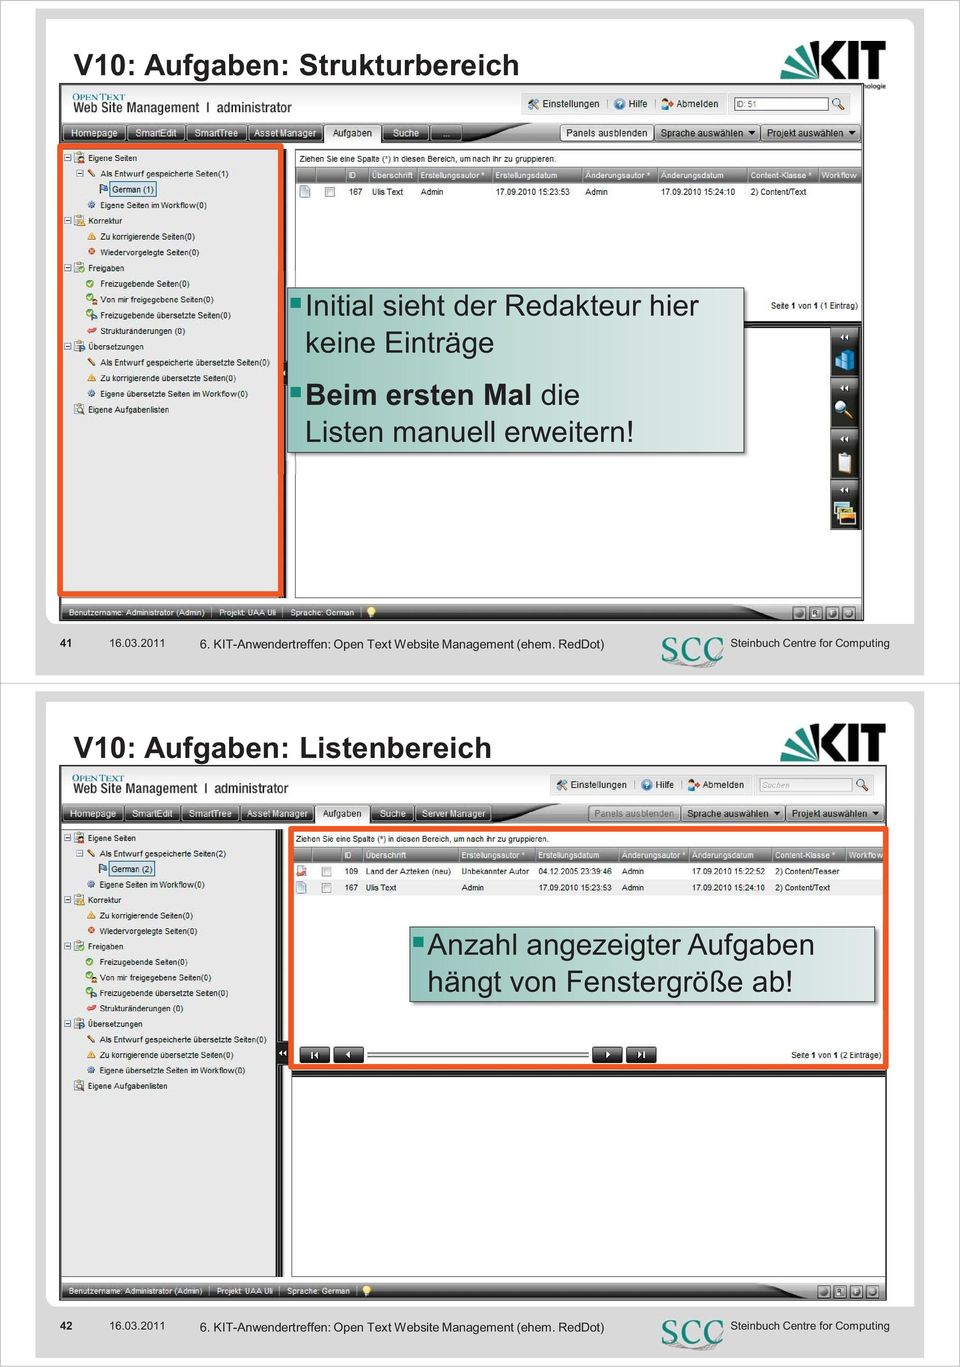 KIT-Anwendertreffen: Open Text Website Management (ehem.